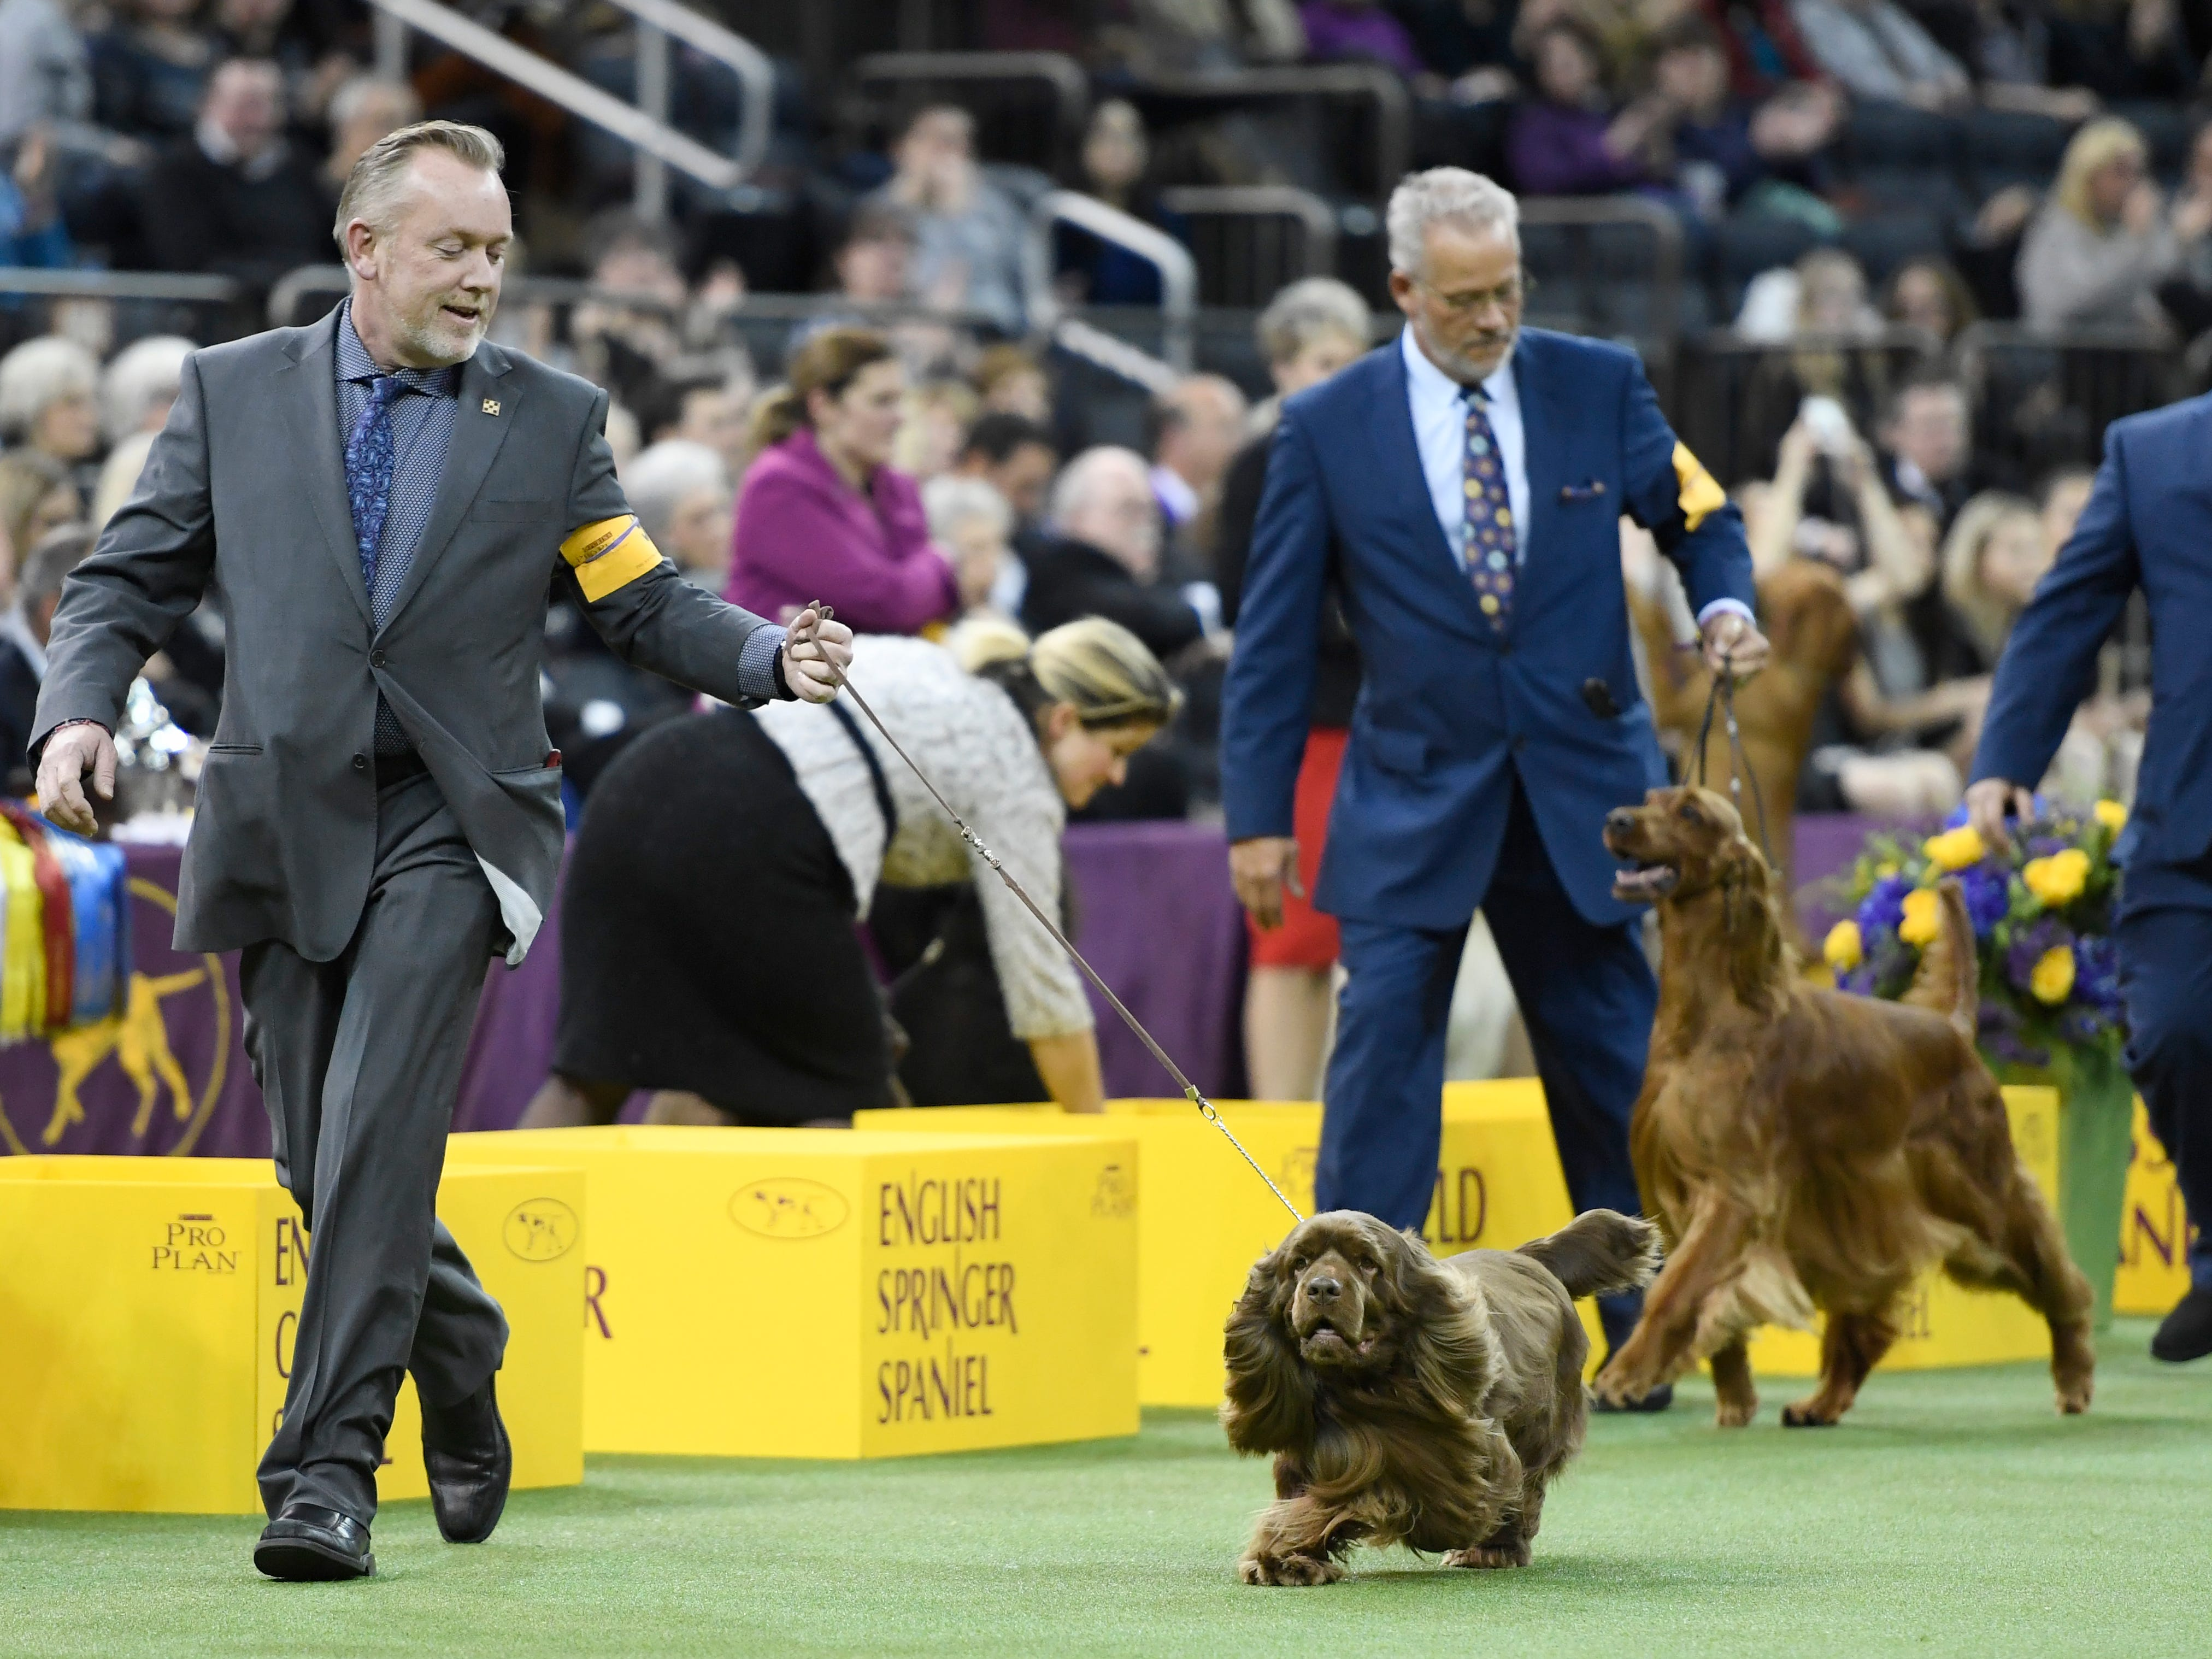 """The Sussex Spaniel """"Bean"""" wins Sporting Group judging at the 143rd Westminster Kennel Club Dog Show at Madison Square Garden."""